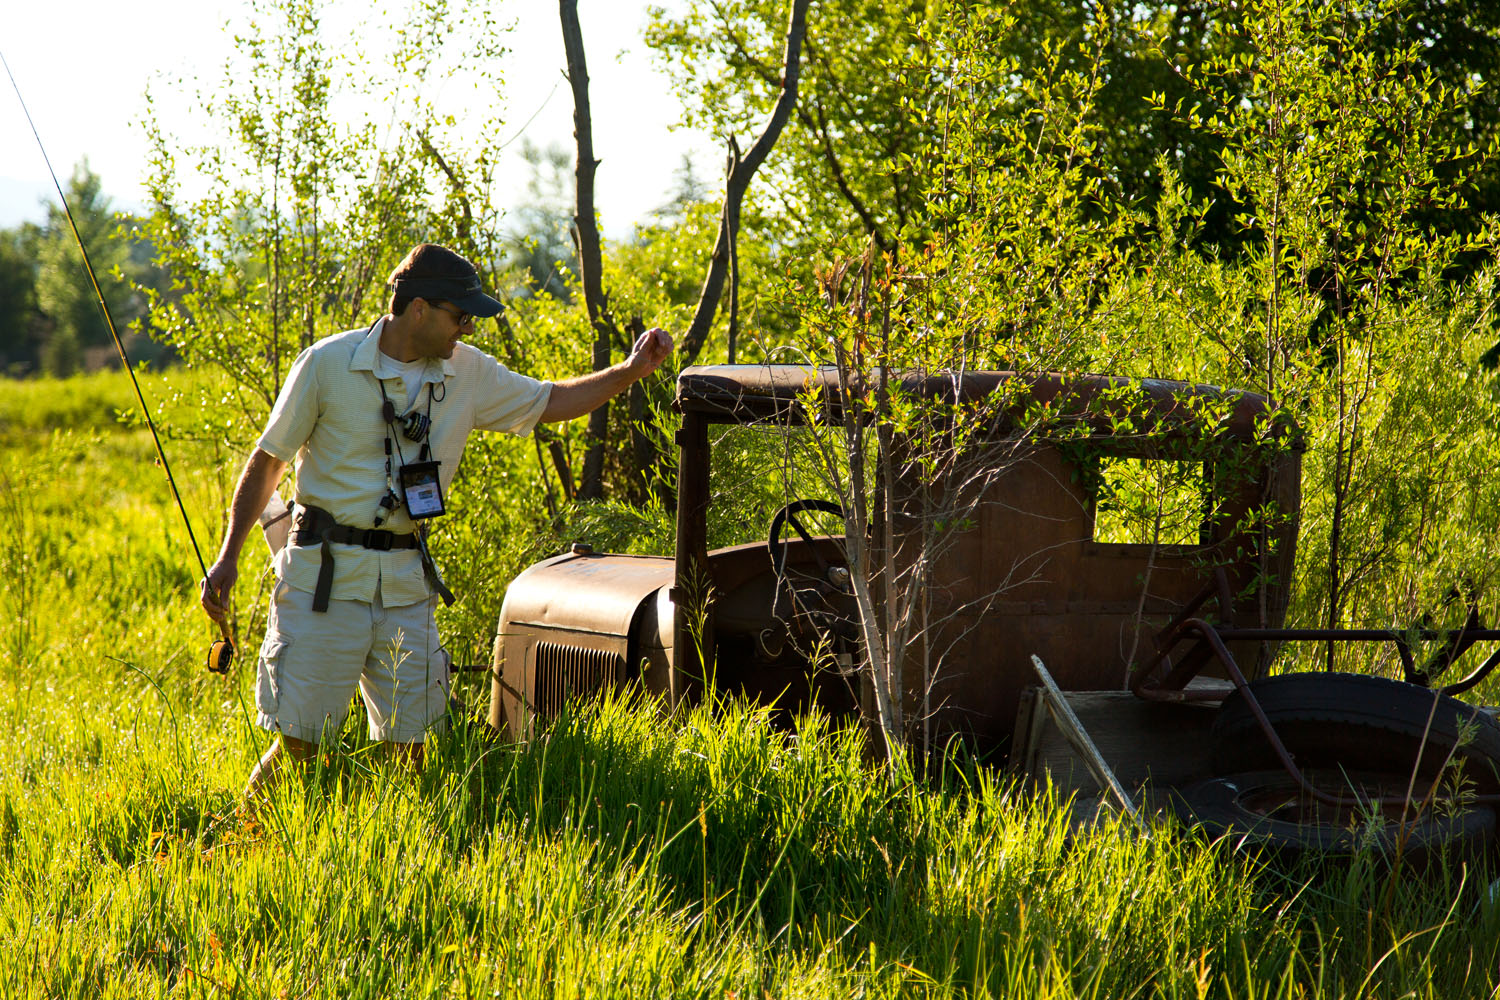 Lifestyle: Peter Sheetz exploring an old rusty truck while fly fishing, Carbondale, Colorado